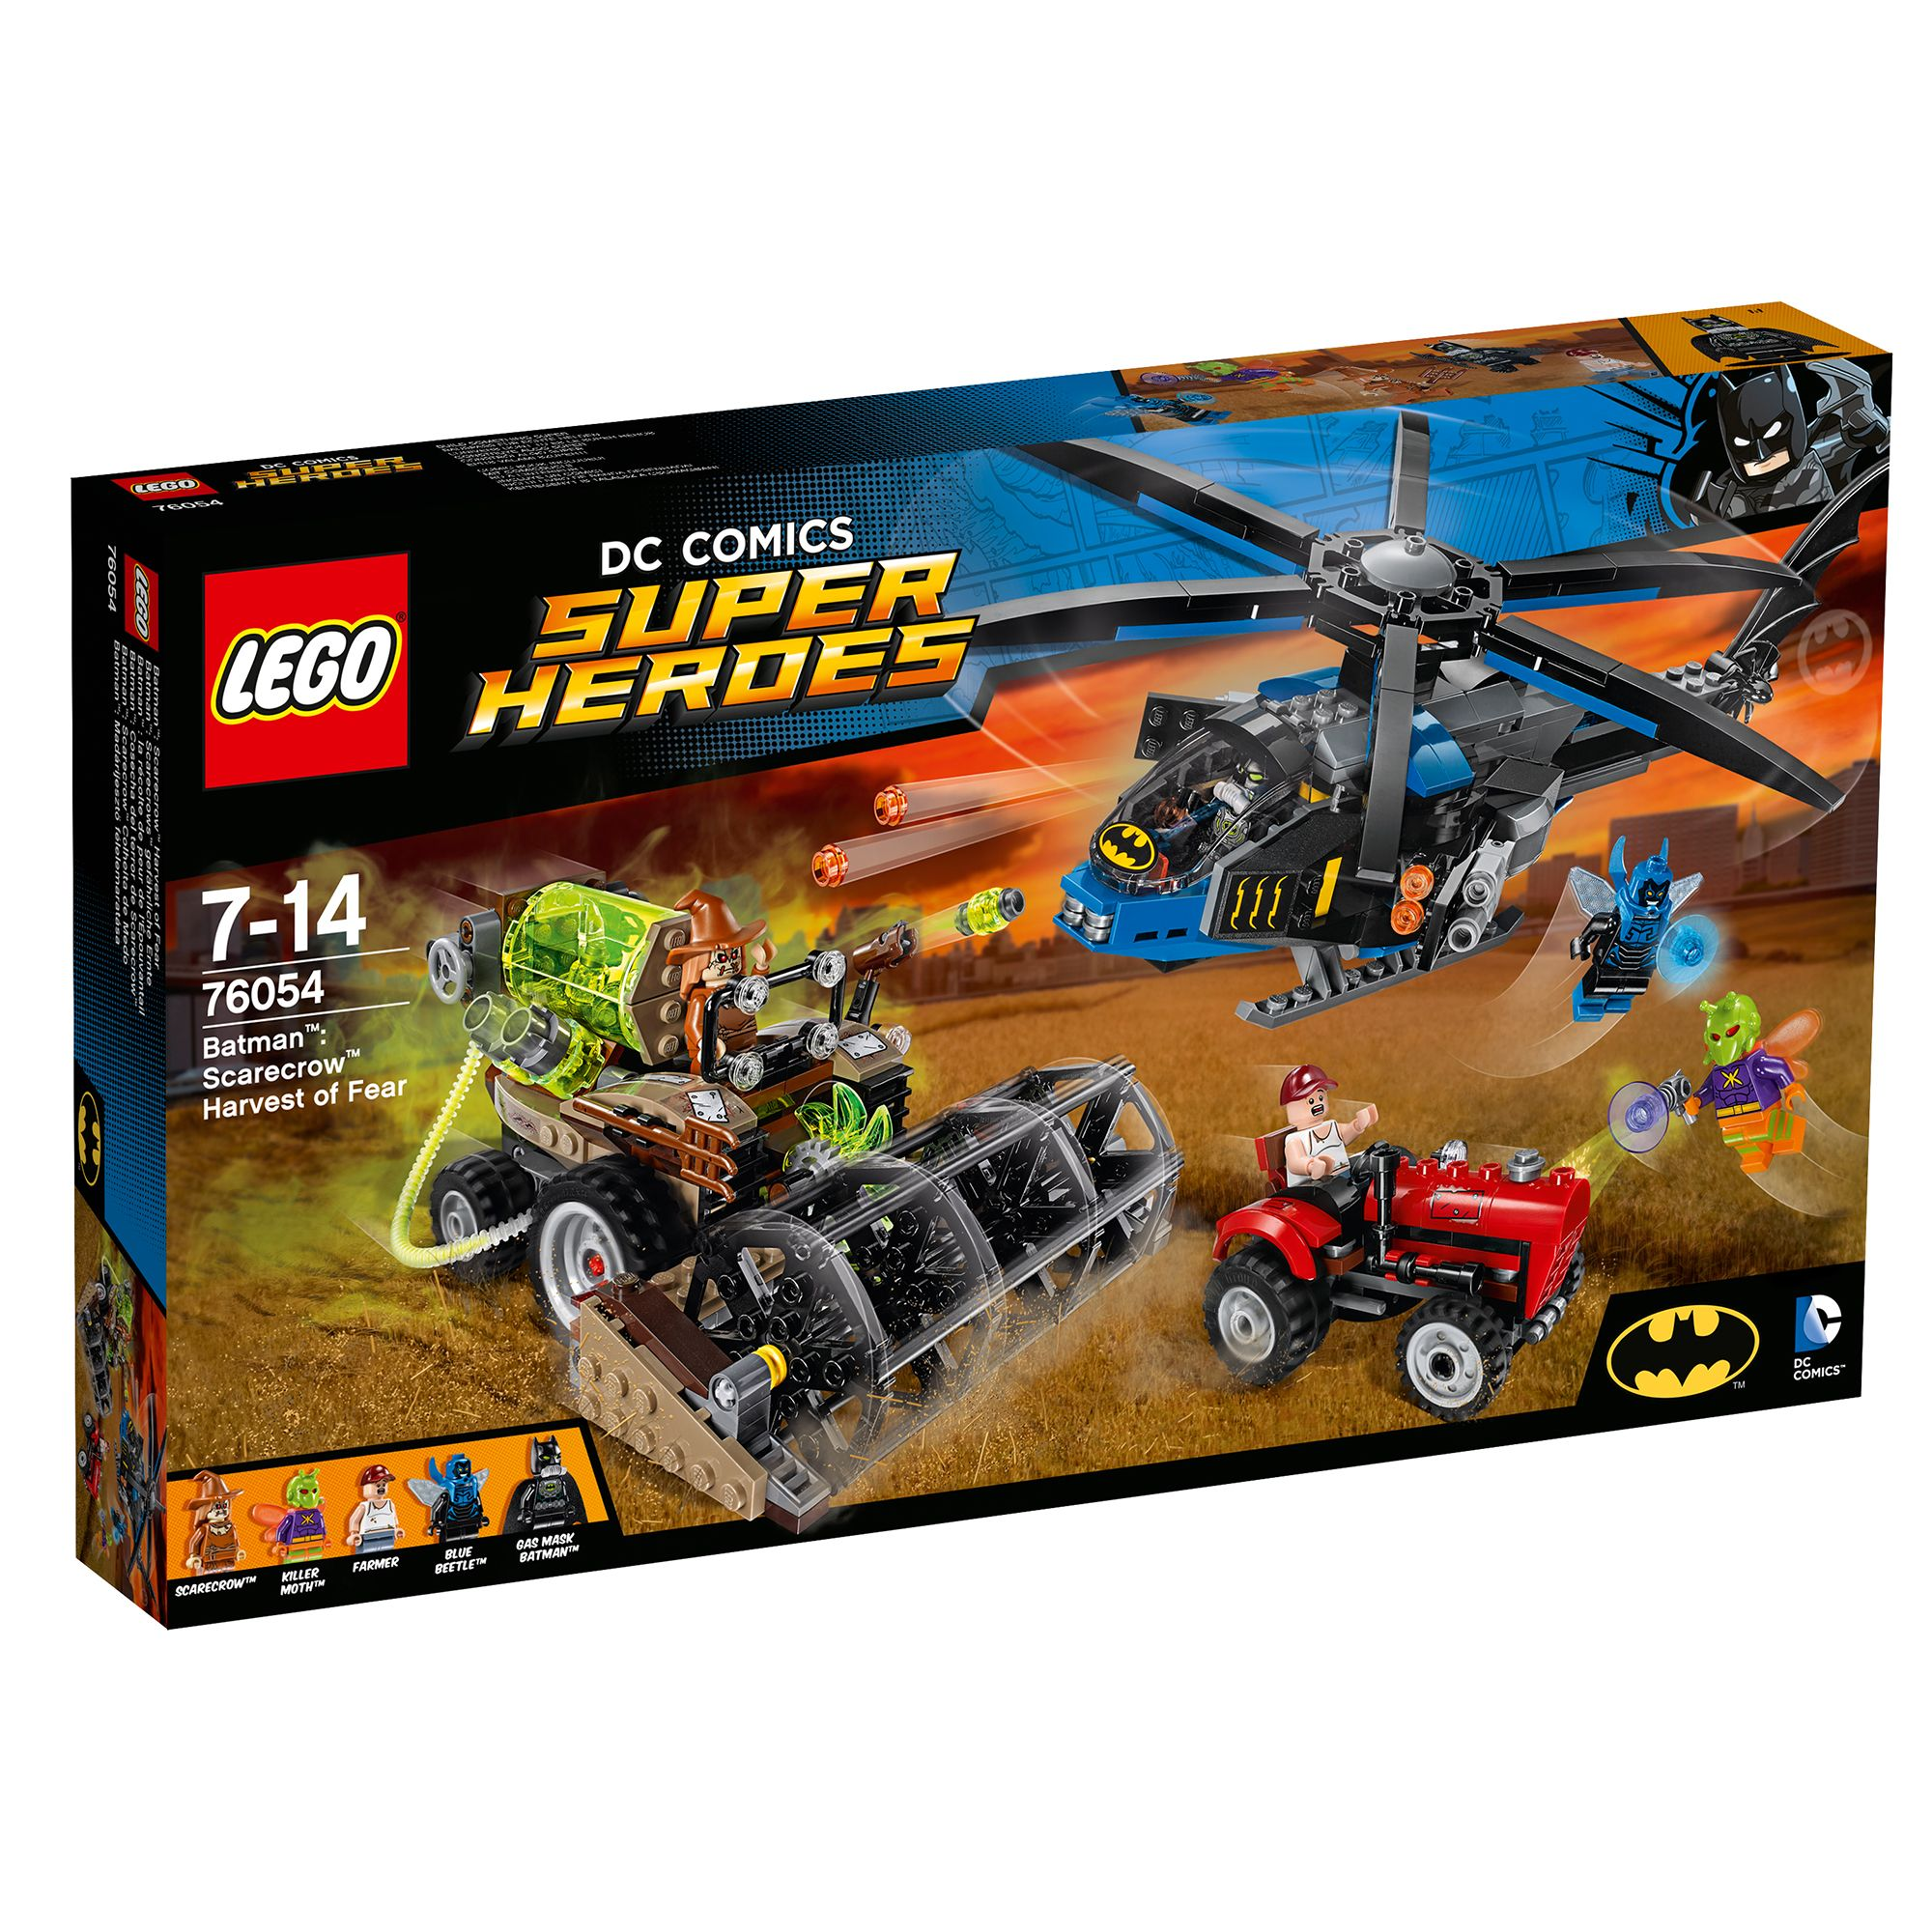 Image of Lego DC Comics Batman Scarecrow Harvest Of Fear